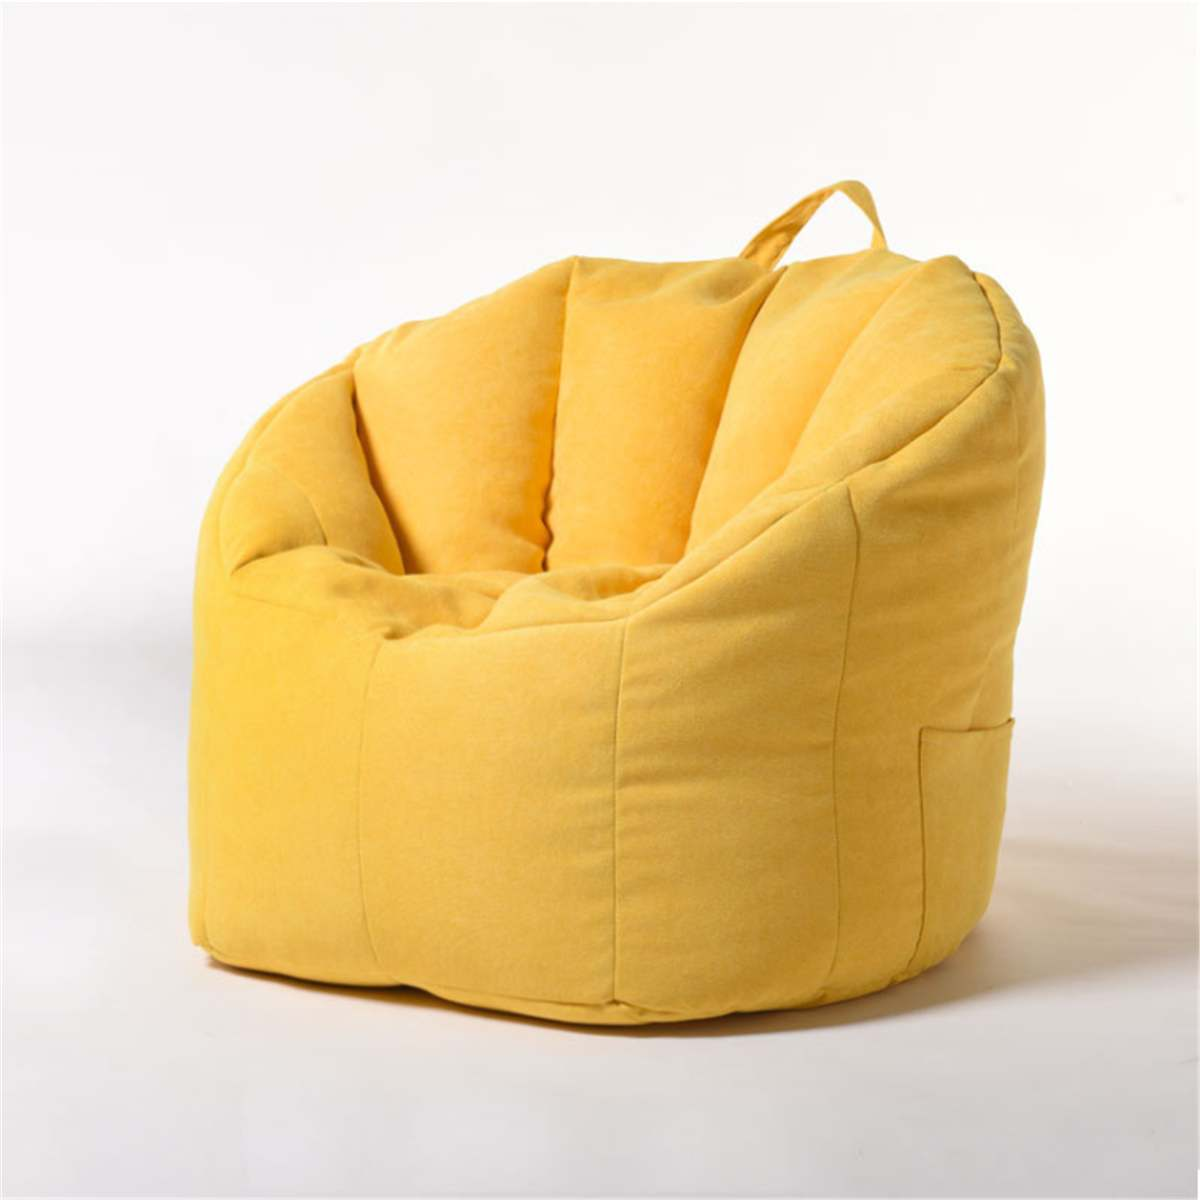 Bean Bag Cover Sofa Chair Filling Bag Lounger Sofa Ottoman Seat Living Room Furniture Without Filler Beanbag Pouf Puff CouchBean Bag Cover Sofa Chair Filling Bag Lounger Sofa Ottoman Seat Living Room Furniture Without Filler Beanbag Pouf Puff Couch